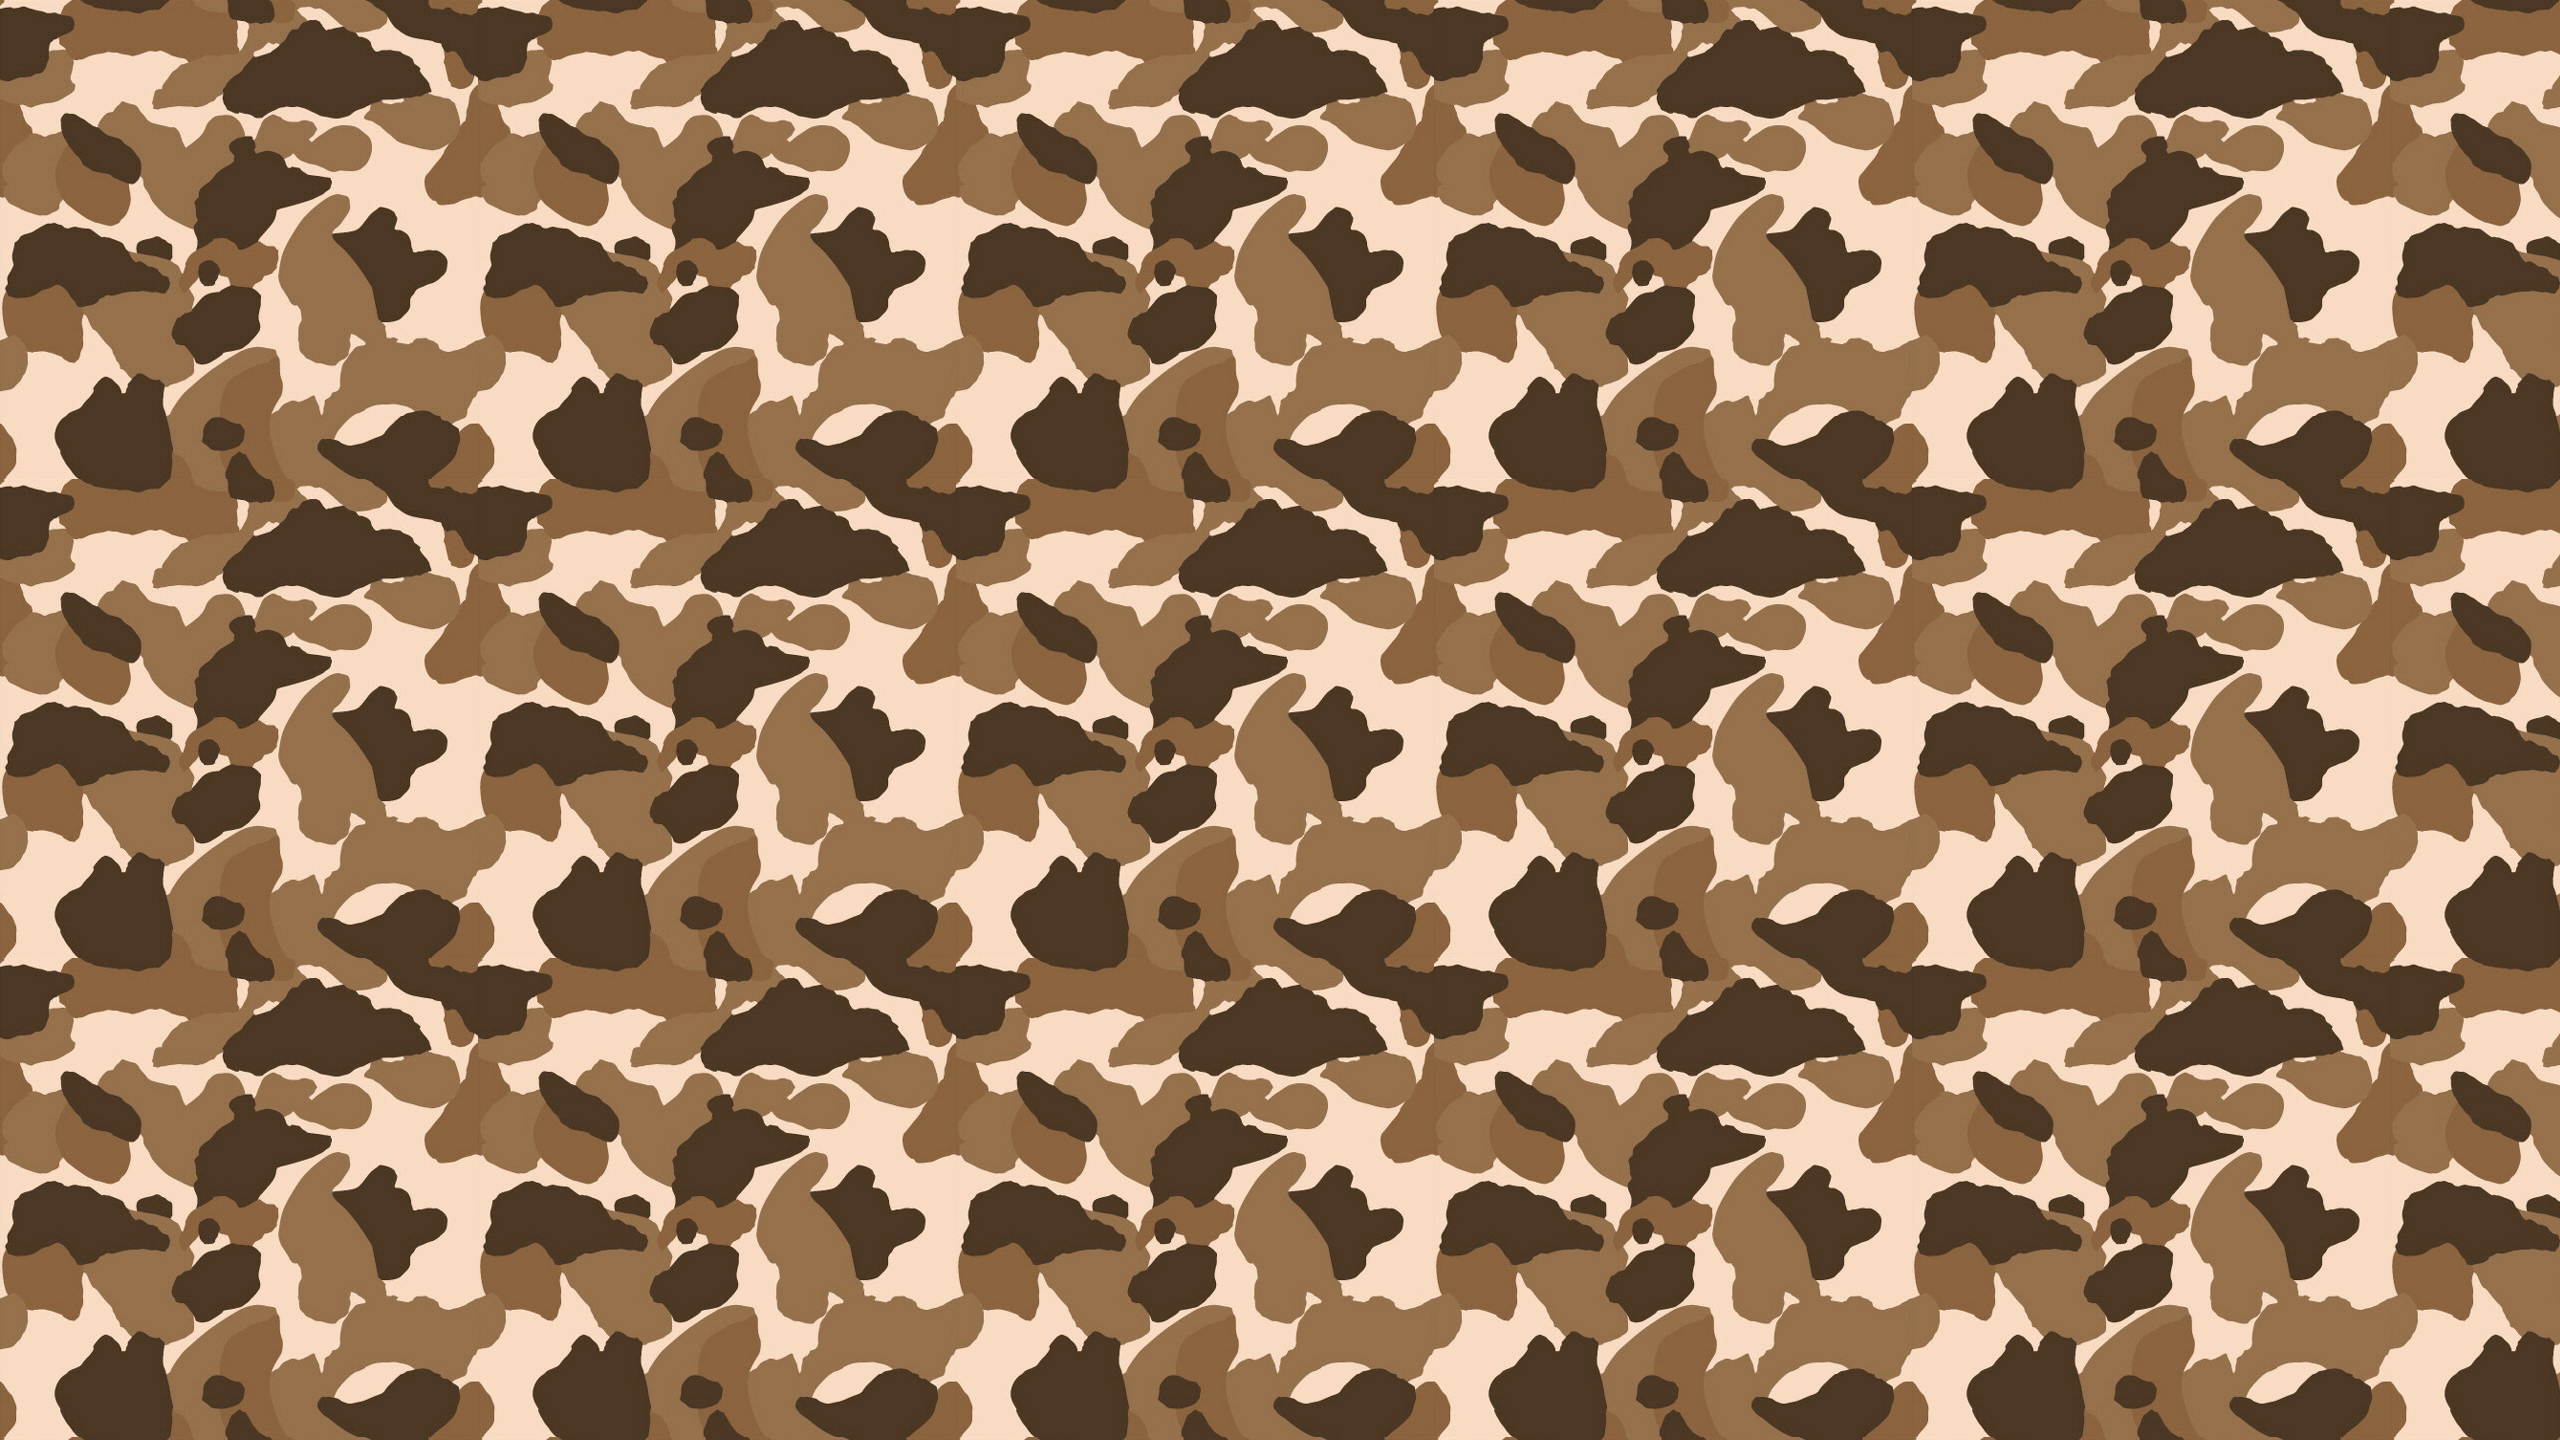 Bape Camo Brown - HD Wallpaper